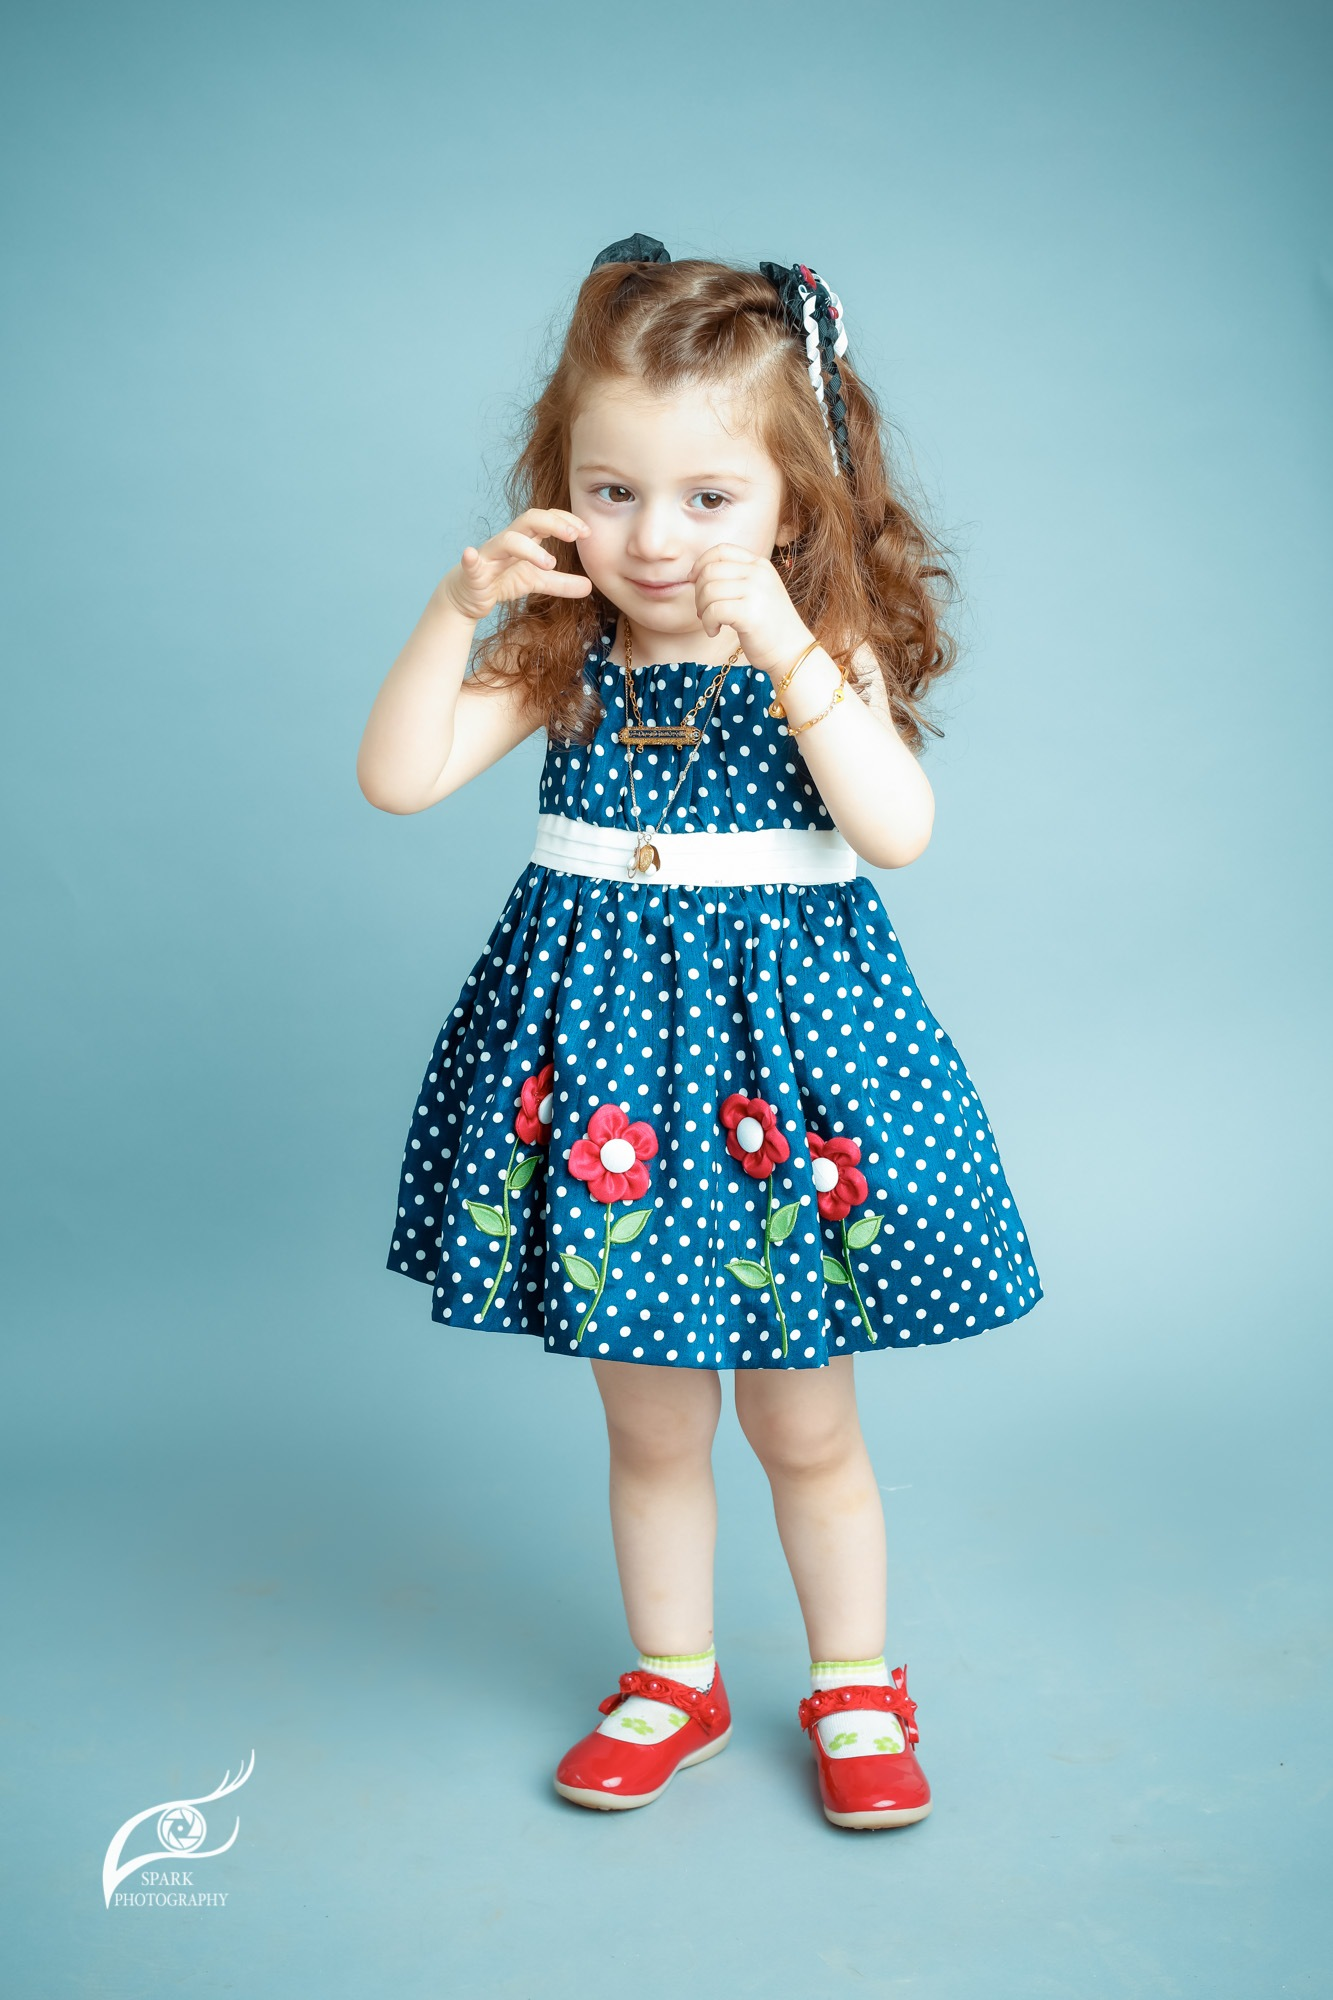 Cute child in Studio by Sparkphotopro